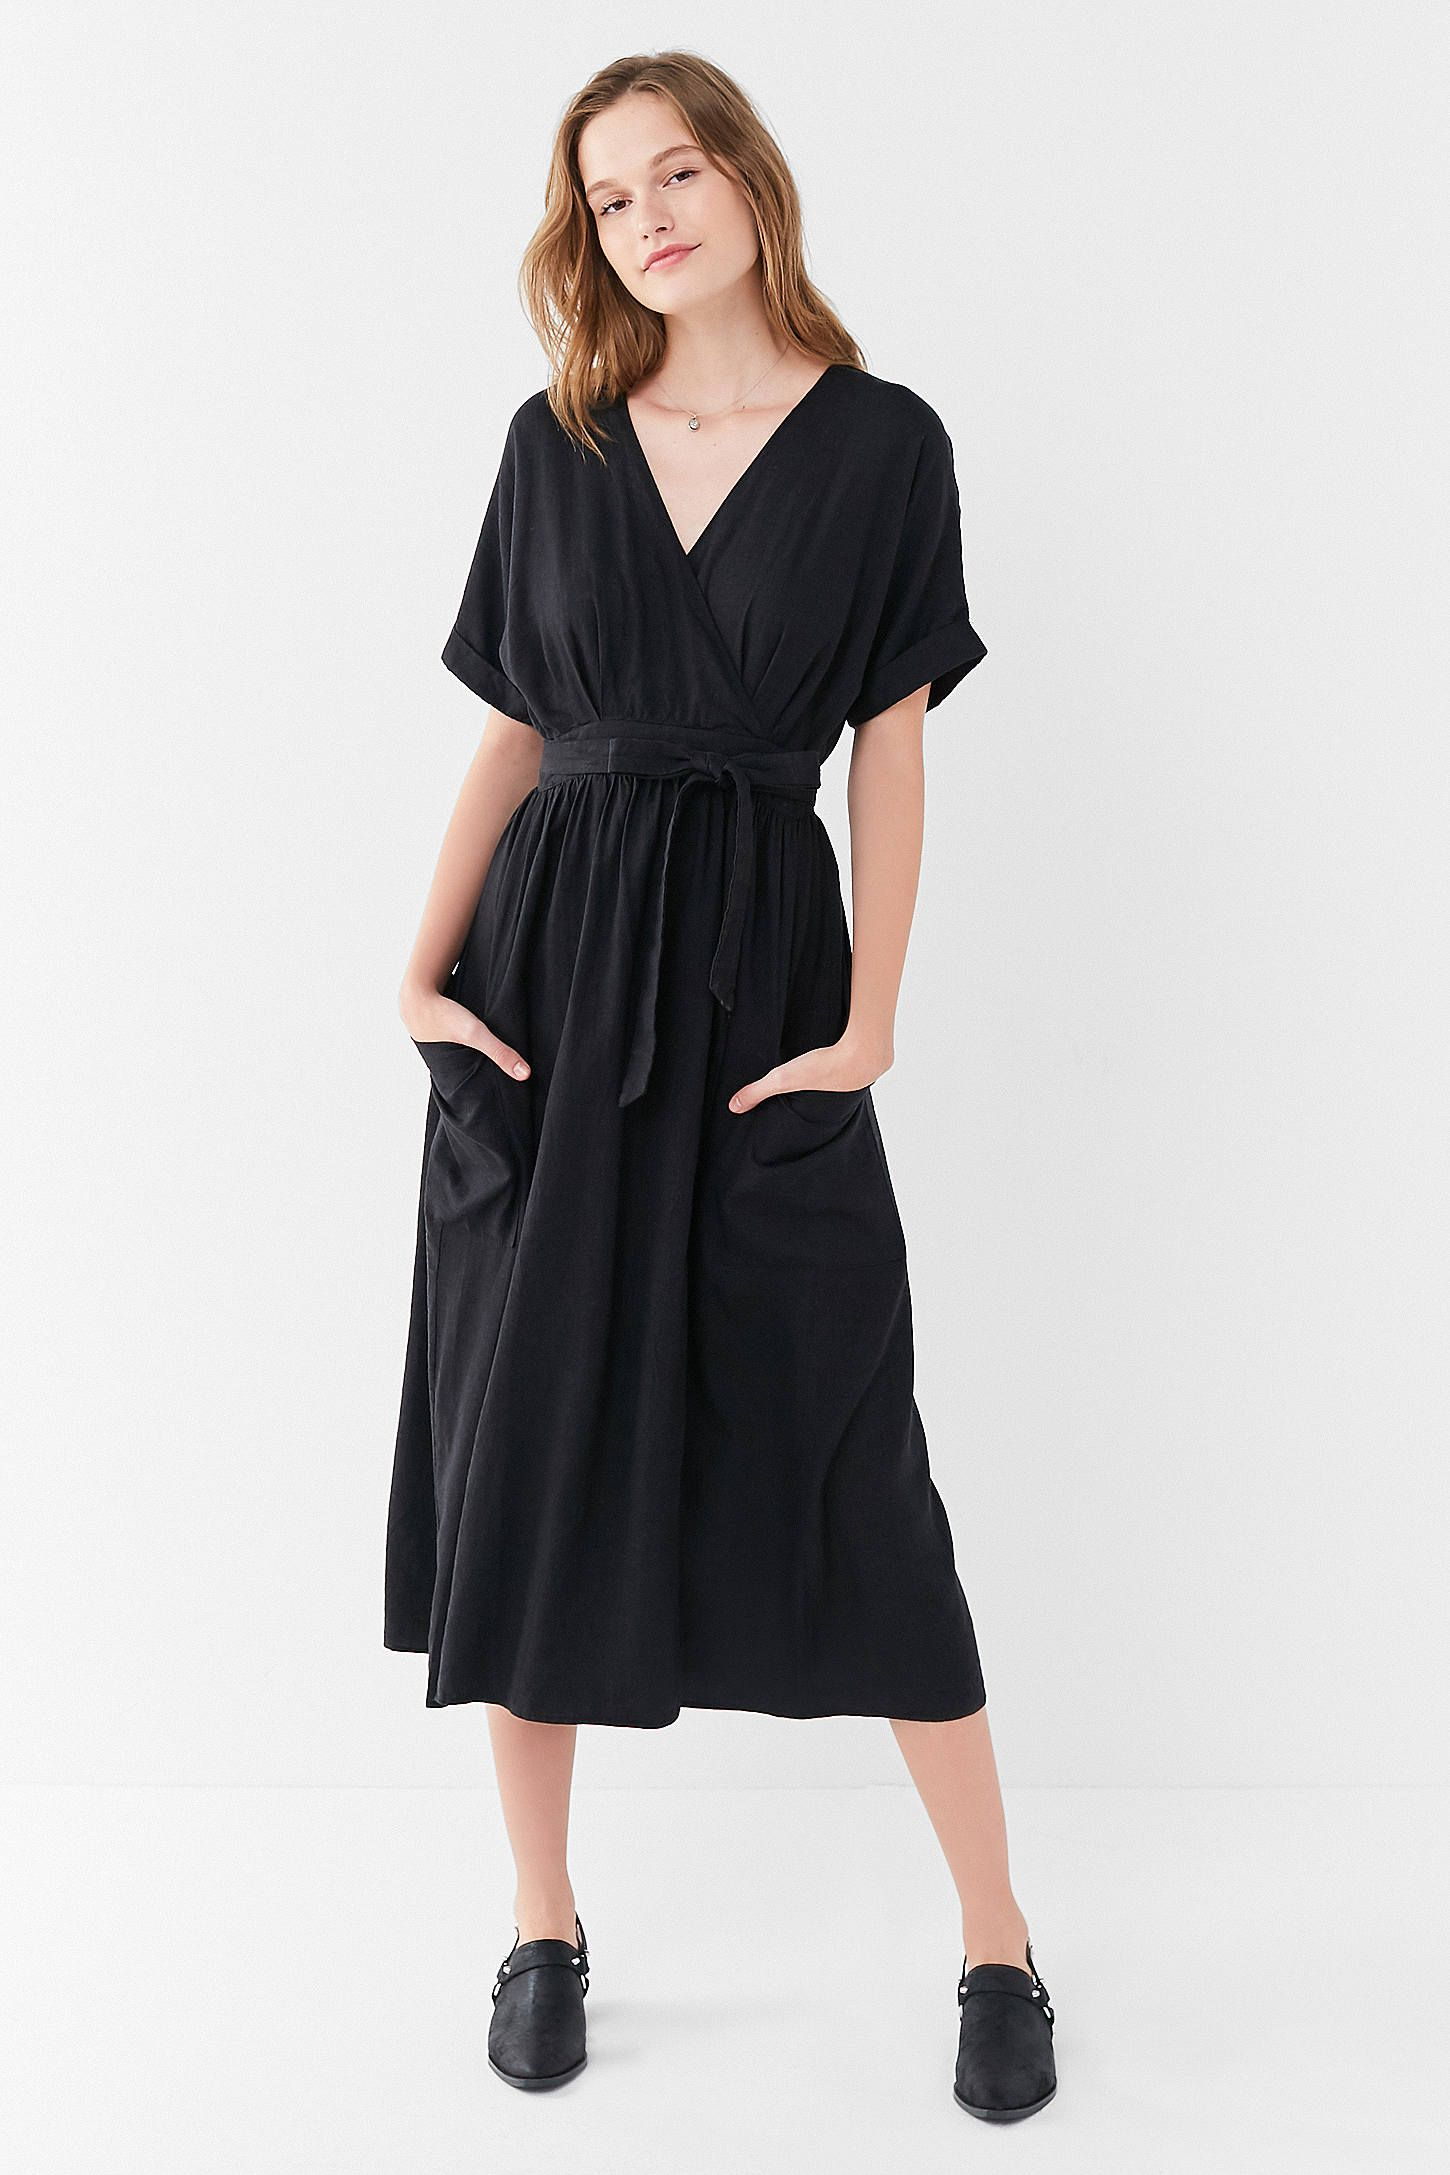 7192b0be0e Shop UO Gabrielle Linen Midi Wrap Dress at Urban Outfitters today. We carry  all the latest styles